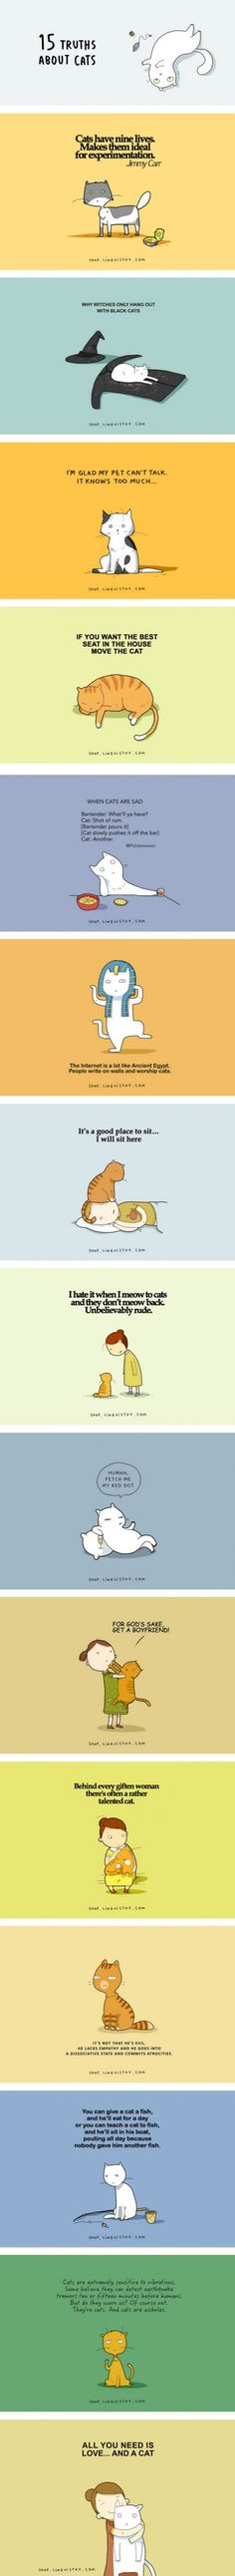 15 Illustrated Truths About Cats. All you need is love....and a cat